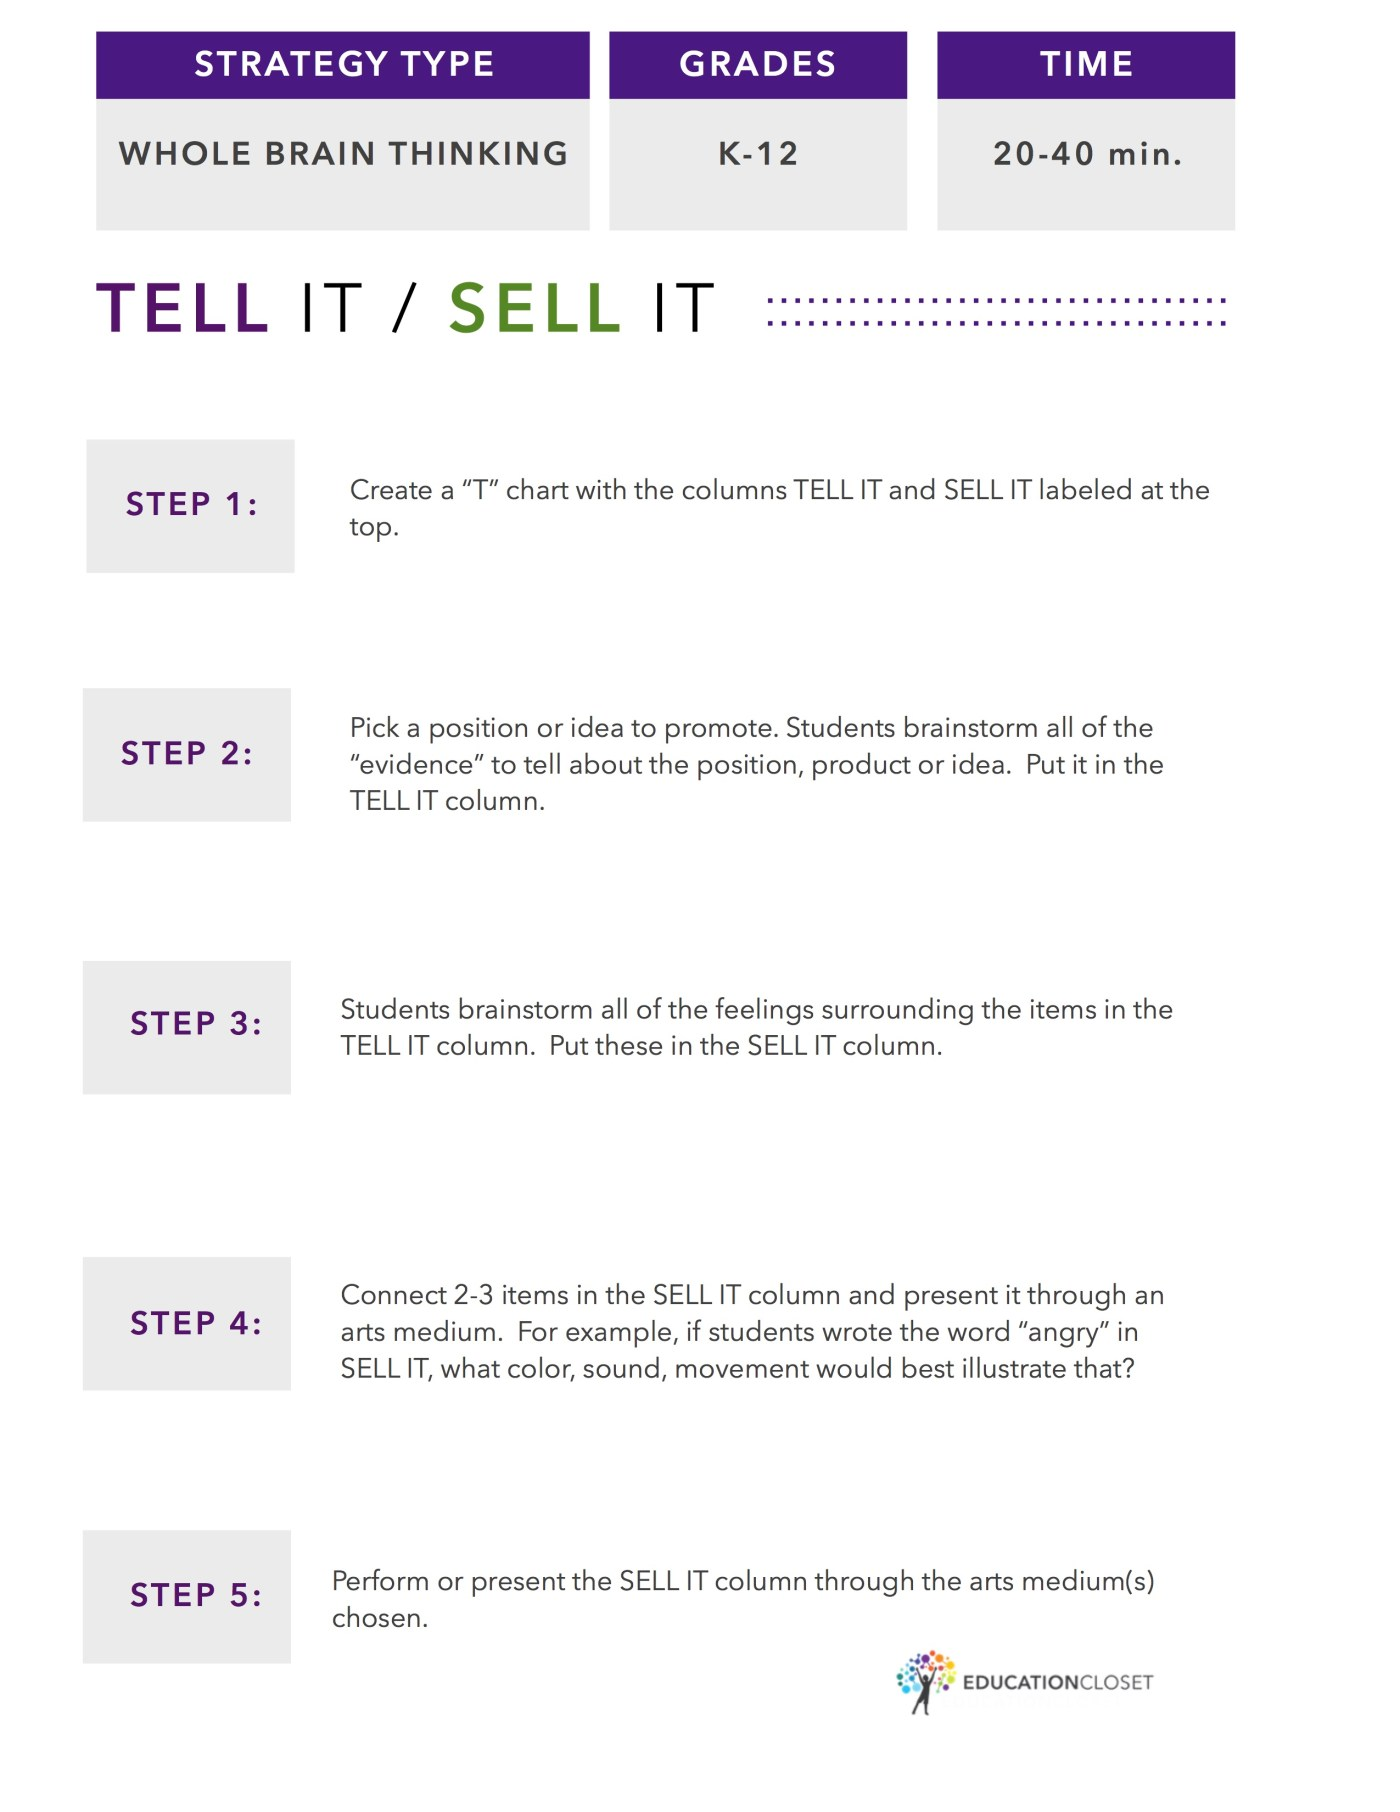 Whole Brain Thinking Strategy: Tell It/Sell It